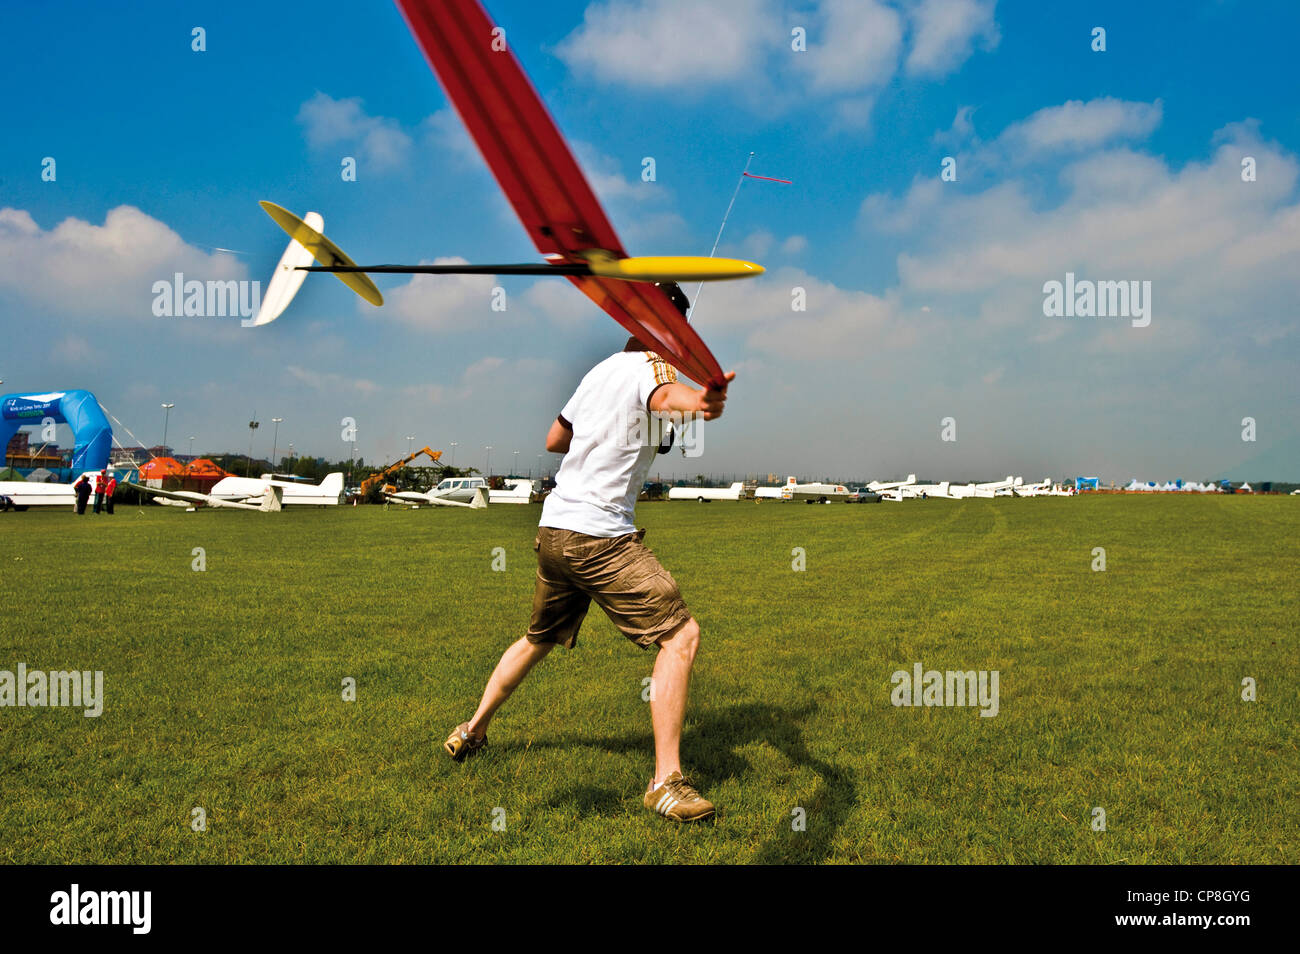 Europe Italy Piedmont Turin airport of Collegno  Word Air Games 2009  radio controlled model airplane aerobatics - Stock Image